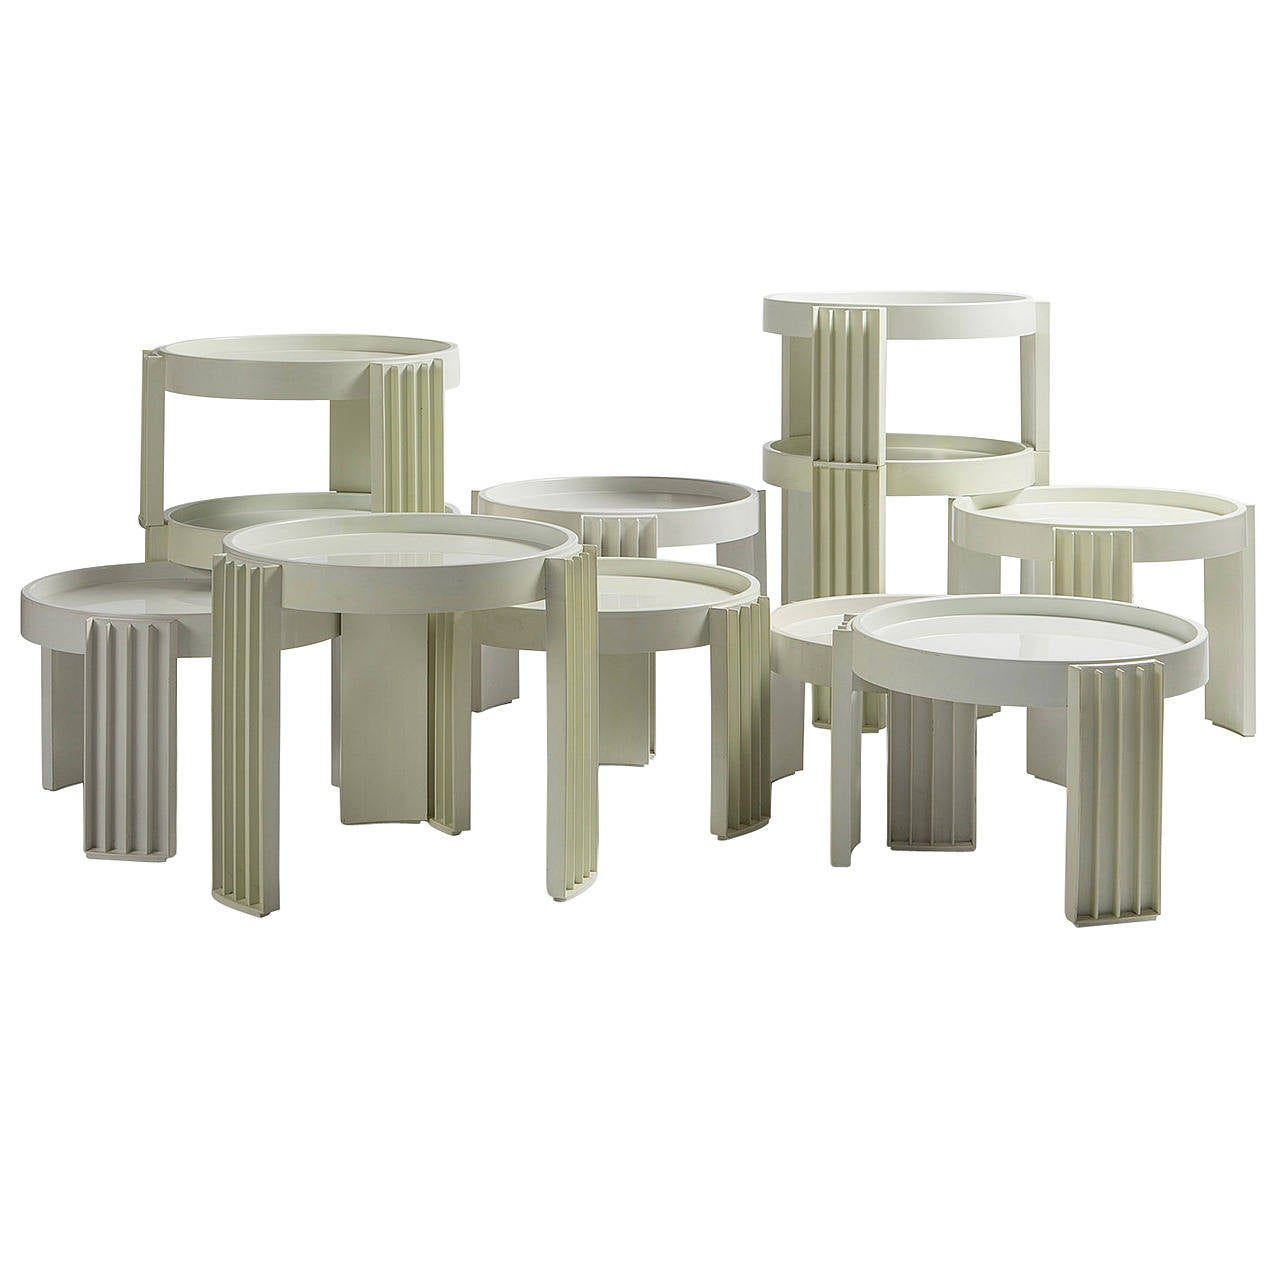 """Set of 11 """"Marema"""" Stacking Tables by Gianfranco Frattini for Cassina"""